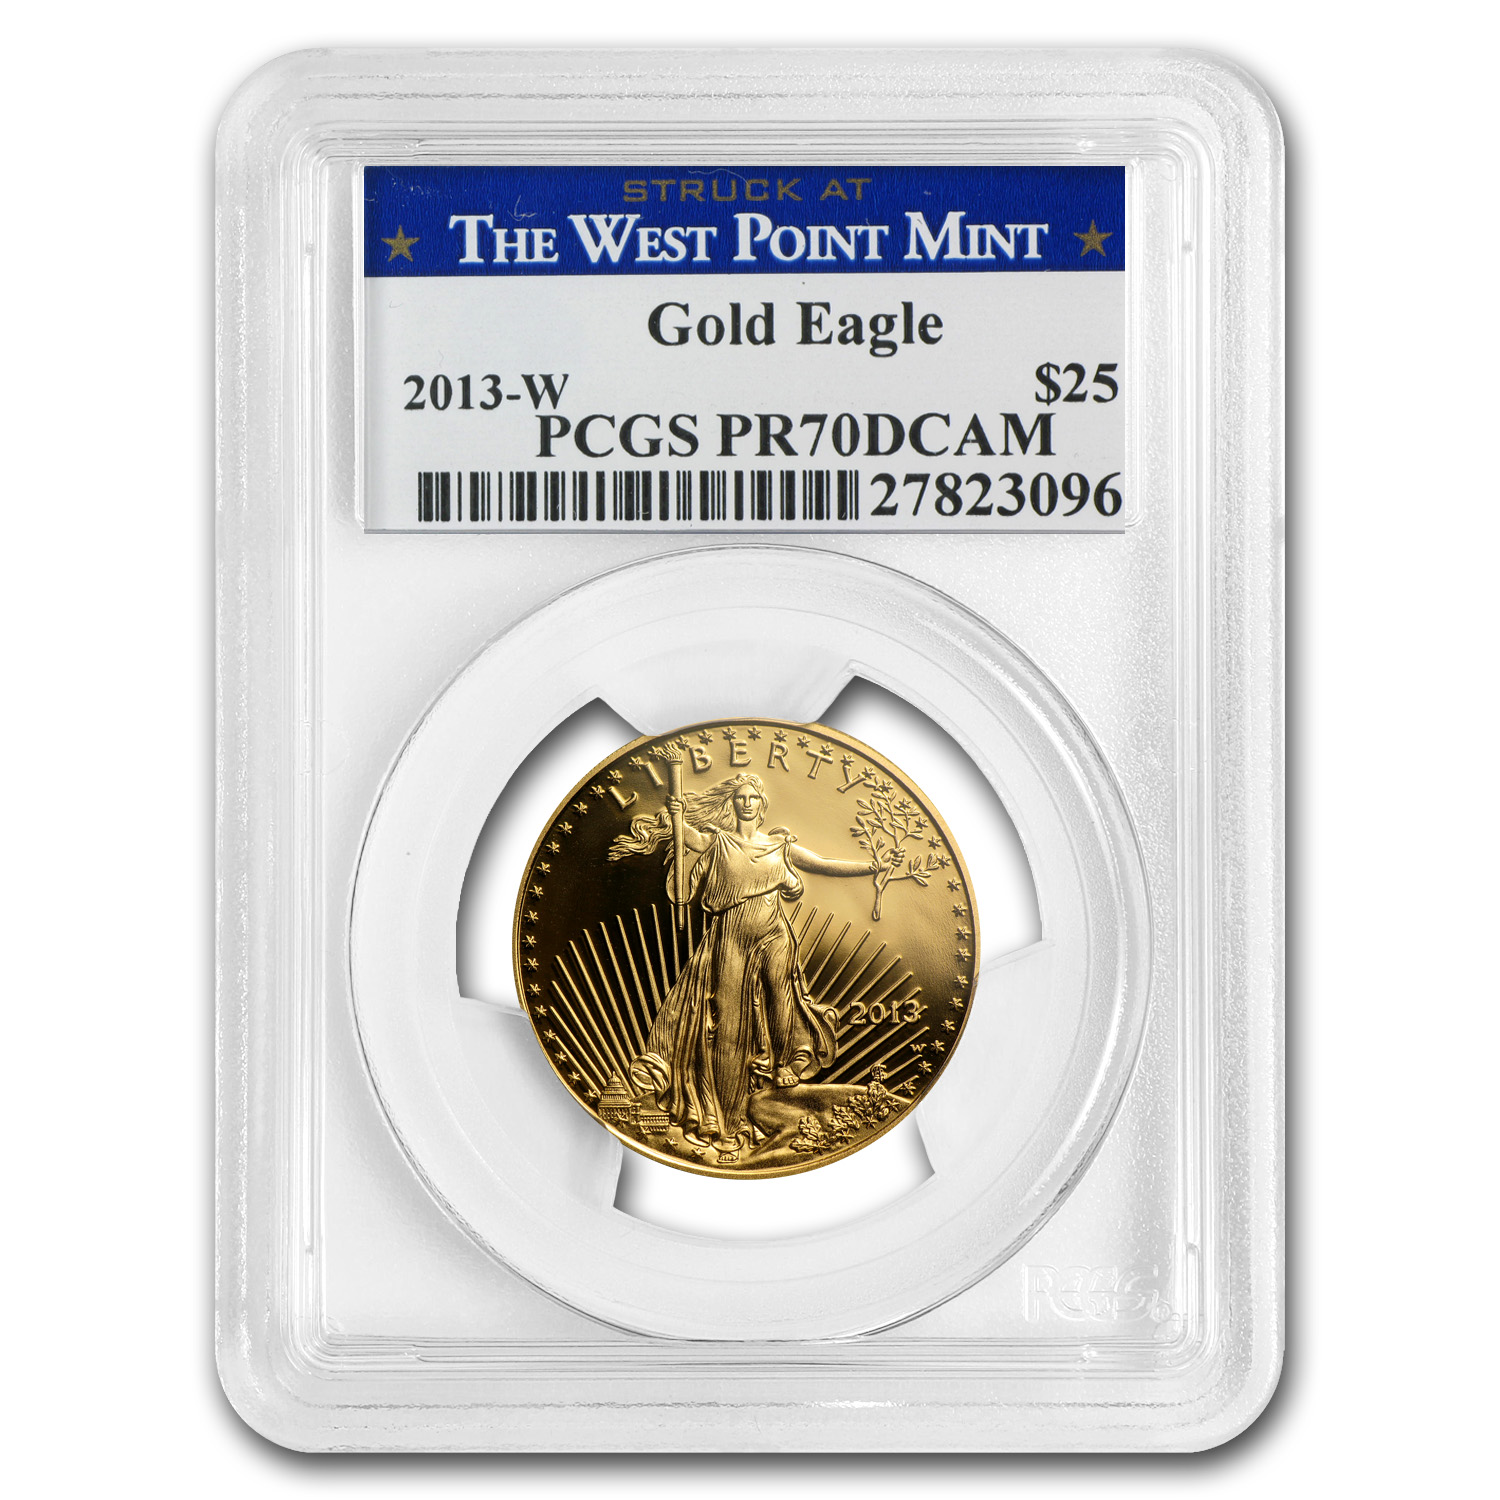 2013-W 1/2 oz Proof Gold American Eagle PR-70 PCGS